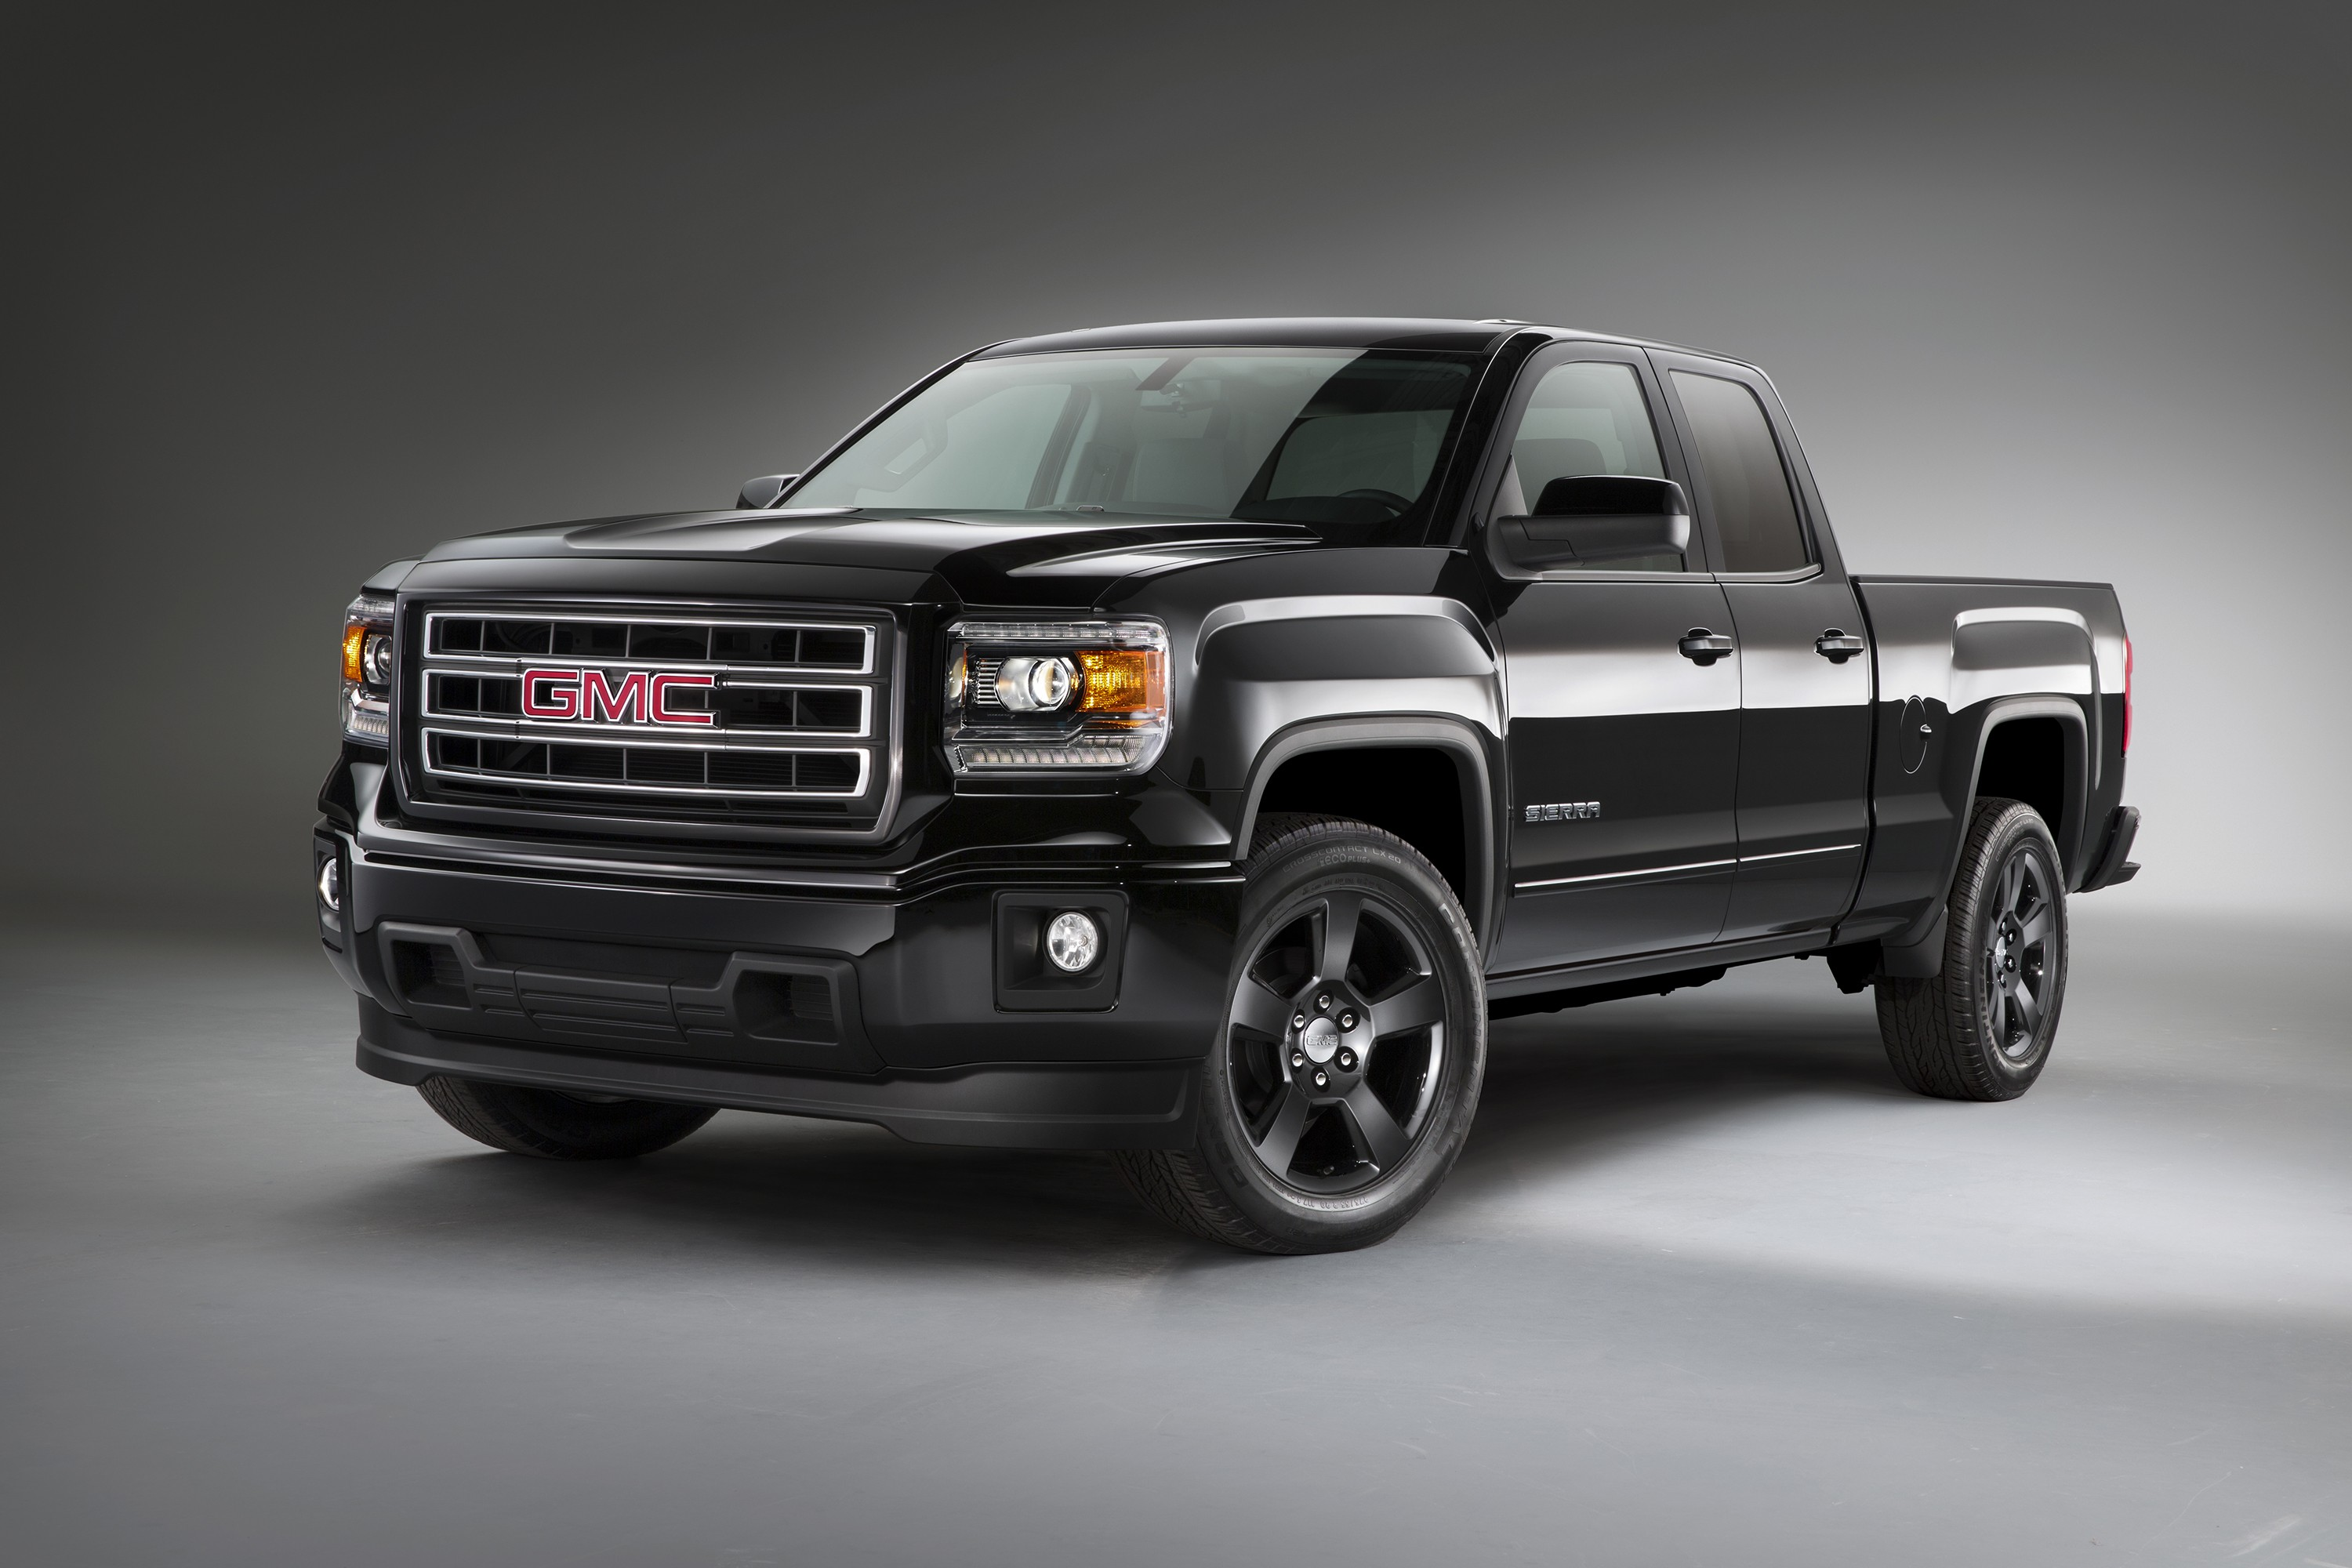 2017 Gmc Sierra Elevation >> 2015 GMC Sierra Elevation Edition Priced at $34,865 ...